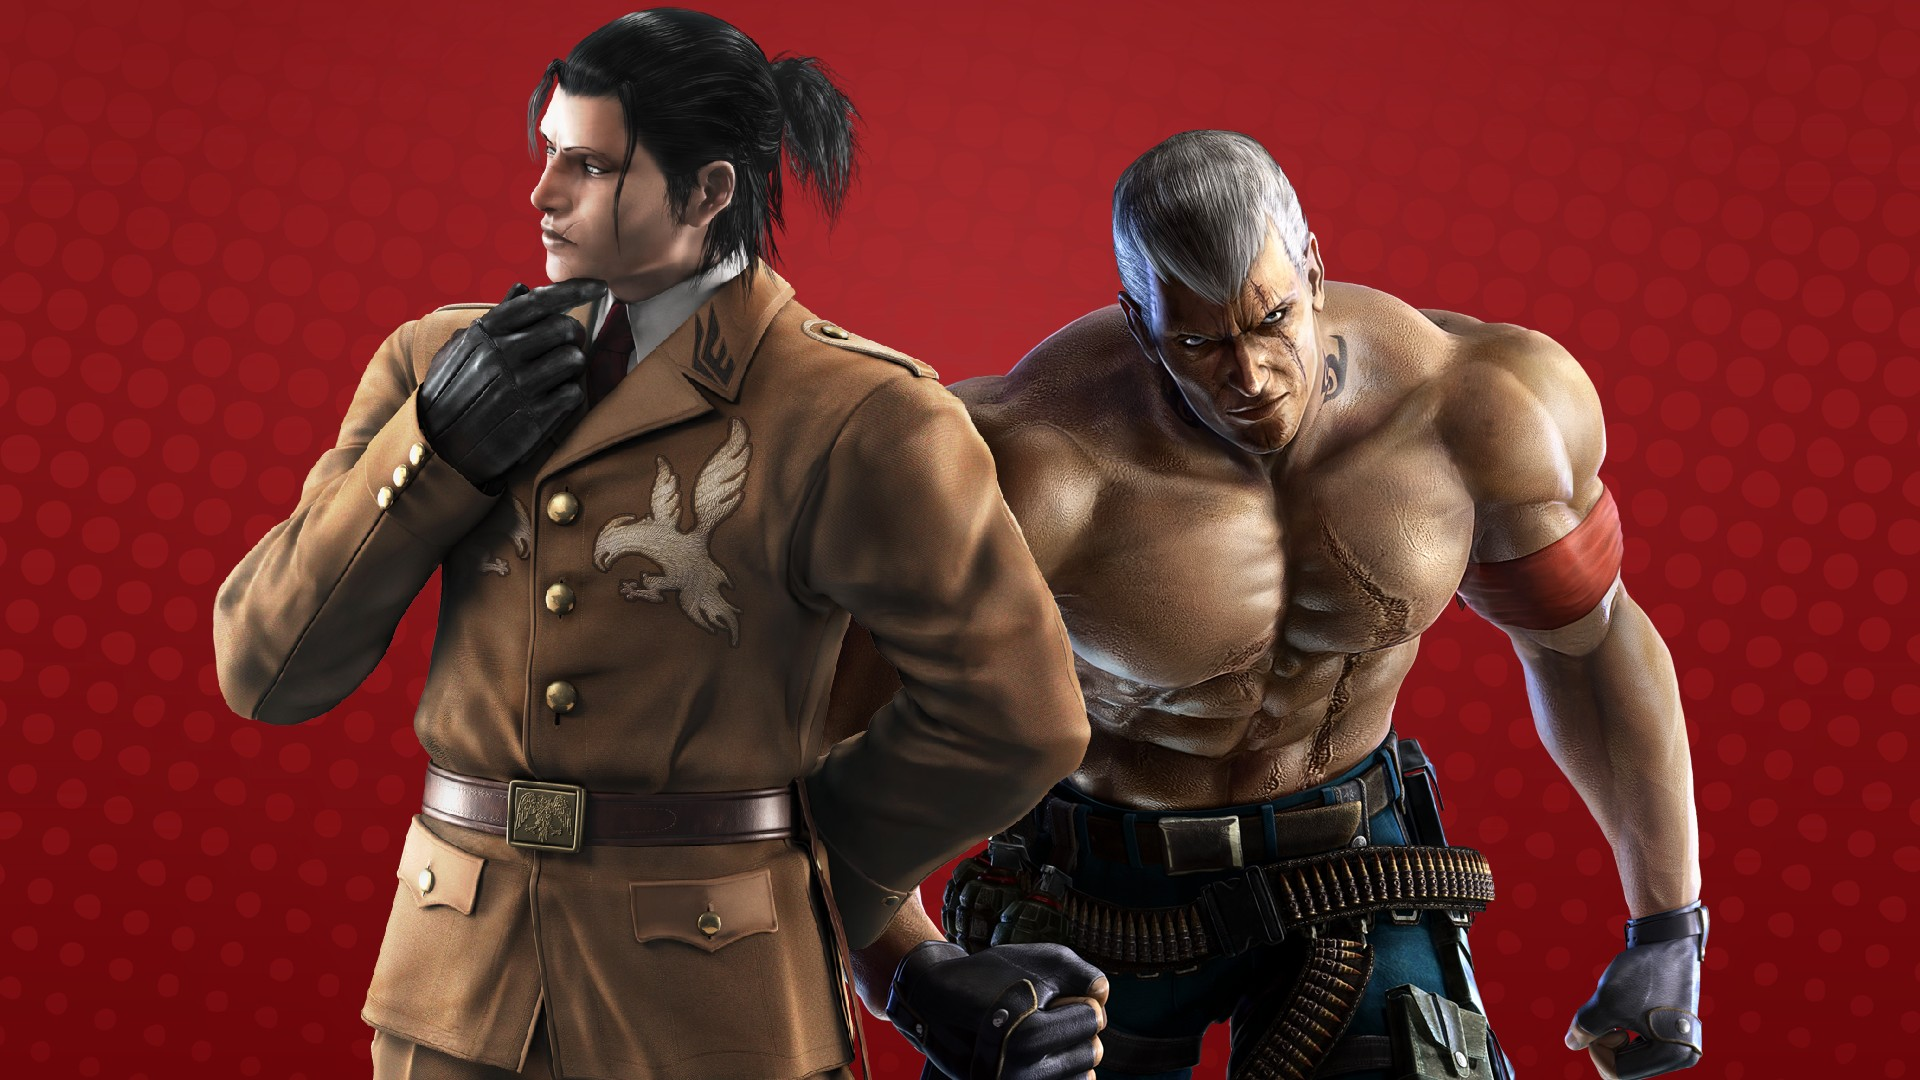 Tekken Images Tekken Hd Wallpaper And Background Photos